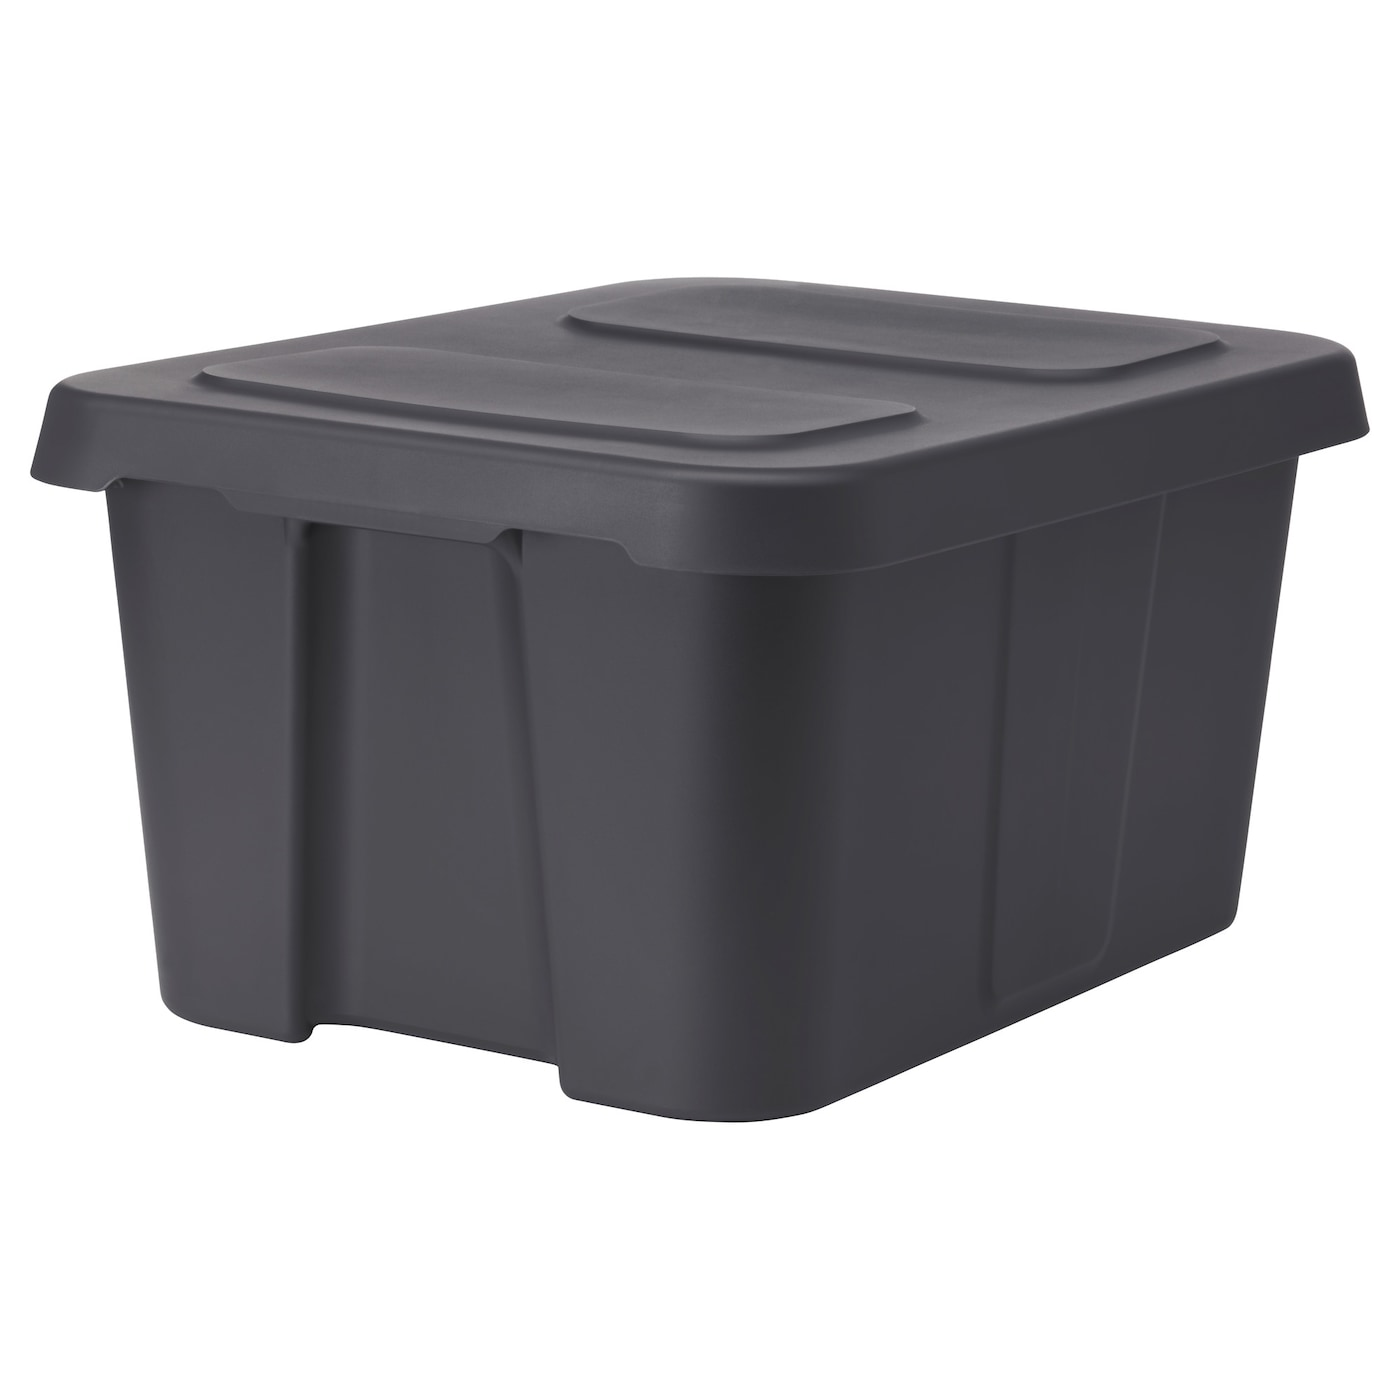 kl mtare box with lid in outdoor dark grey 58x45x30 cm ikea. Black Bedroom Furniture Sets. Home Design Ideas